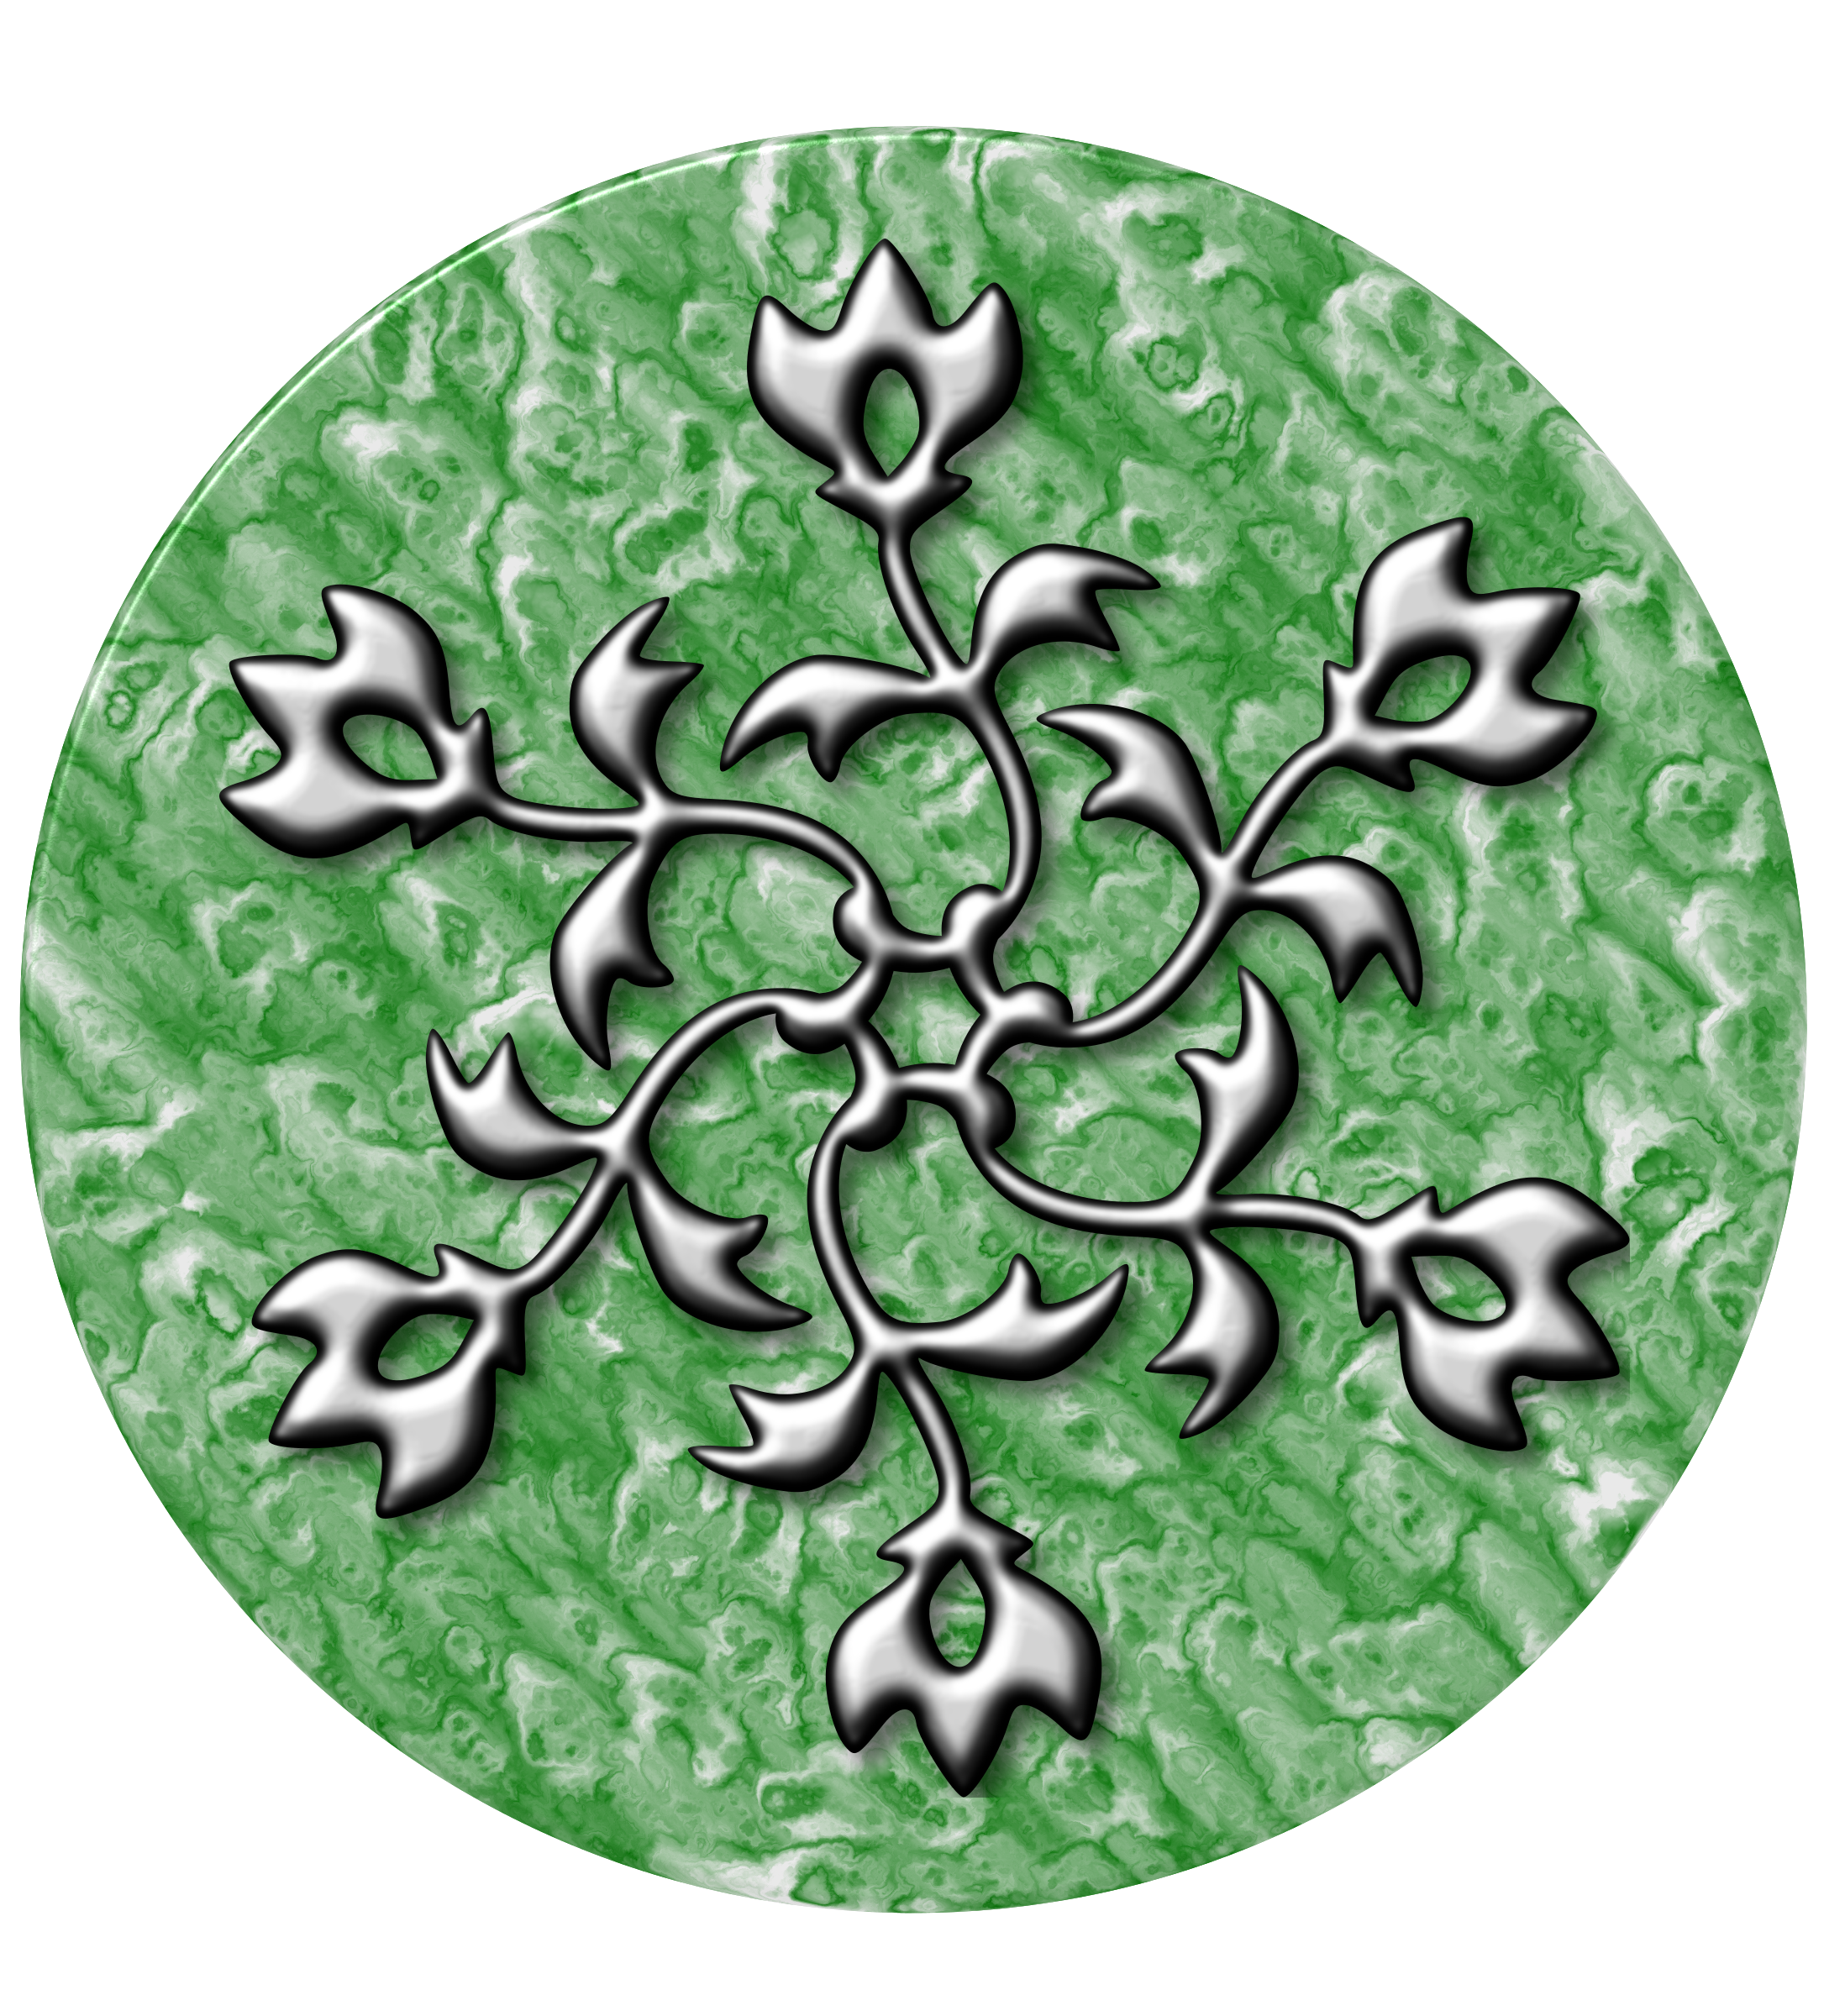 Silver design on jade by Firkin